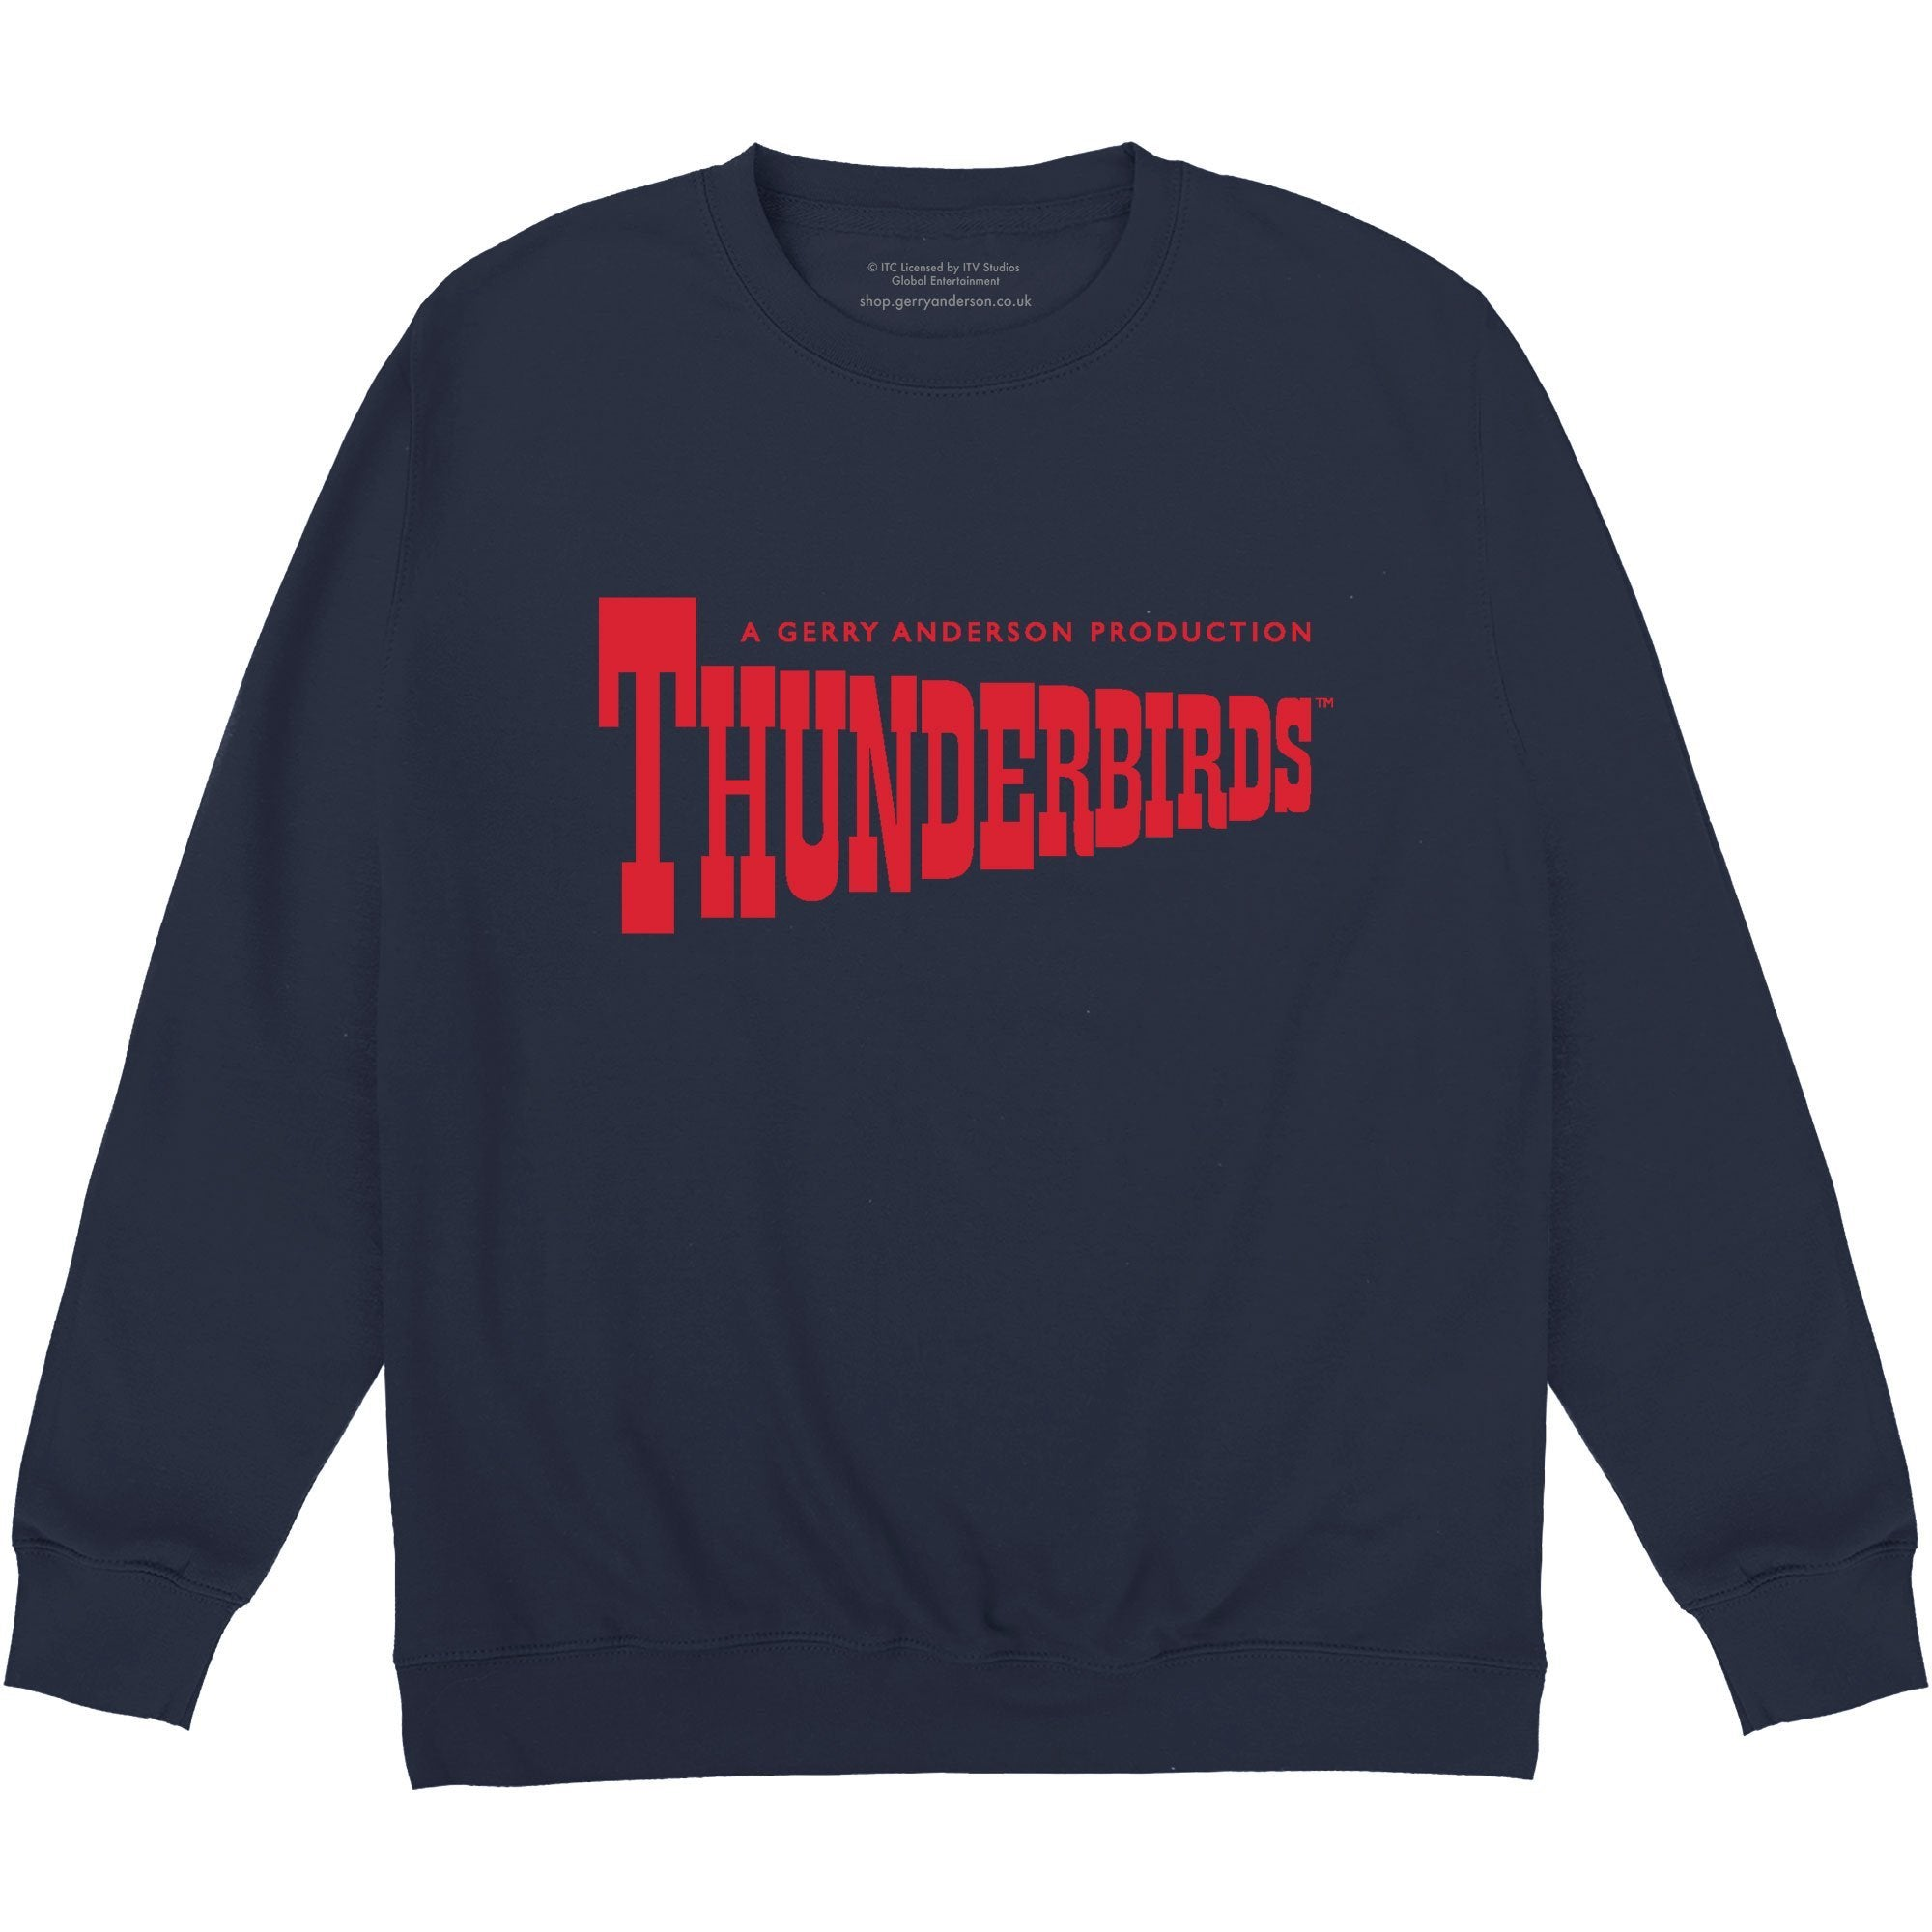 Thunderbirds Classic Logo Sweatshirt [Official & Exclusive] - The Gerry Anderson Store